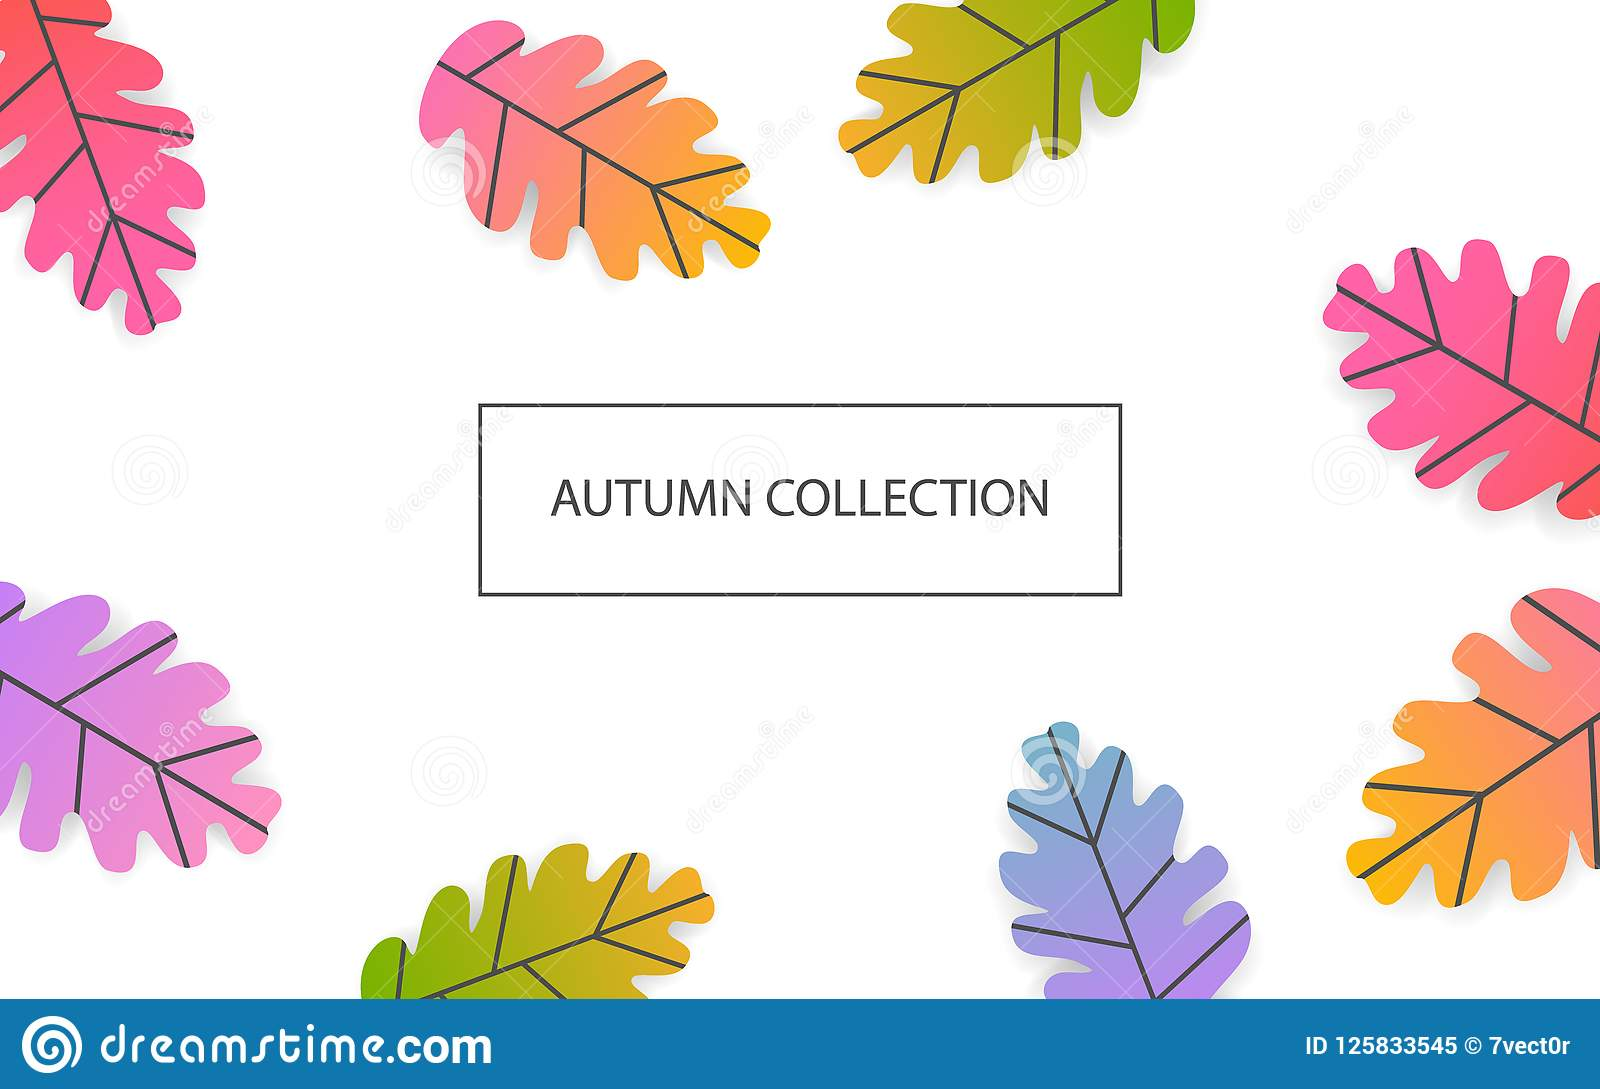 Fall thanksgiving seasonal banner with gradient colored oak leaves background